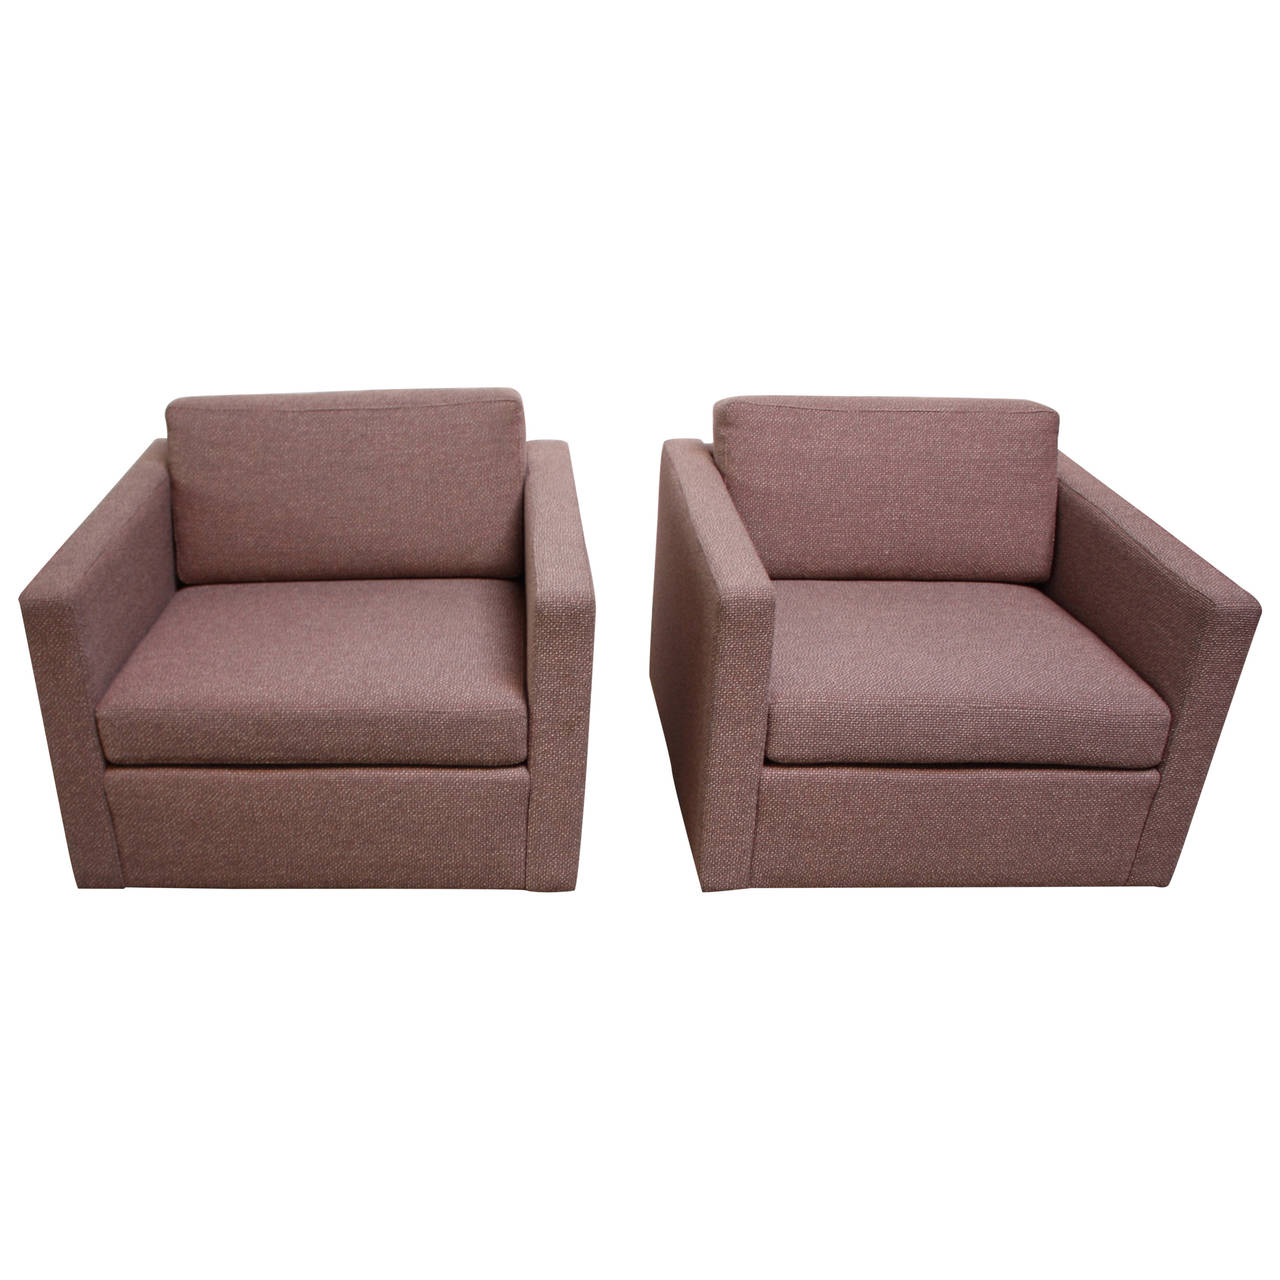 Cube Chairs Pair Of Jack Cartwright Cube Chairs Jarontiques